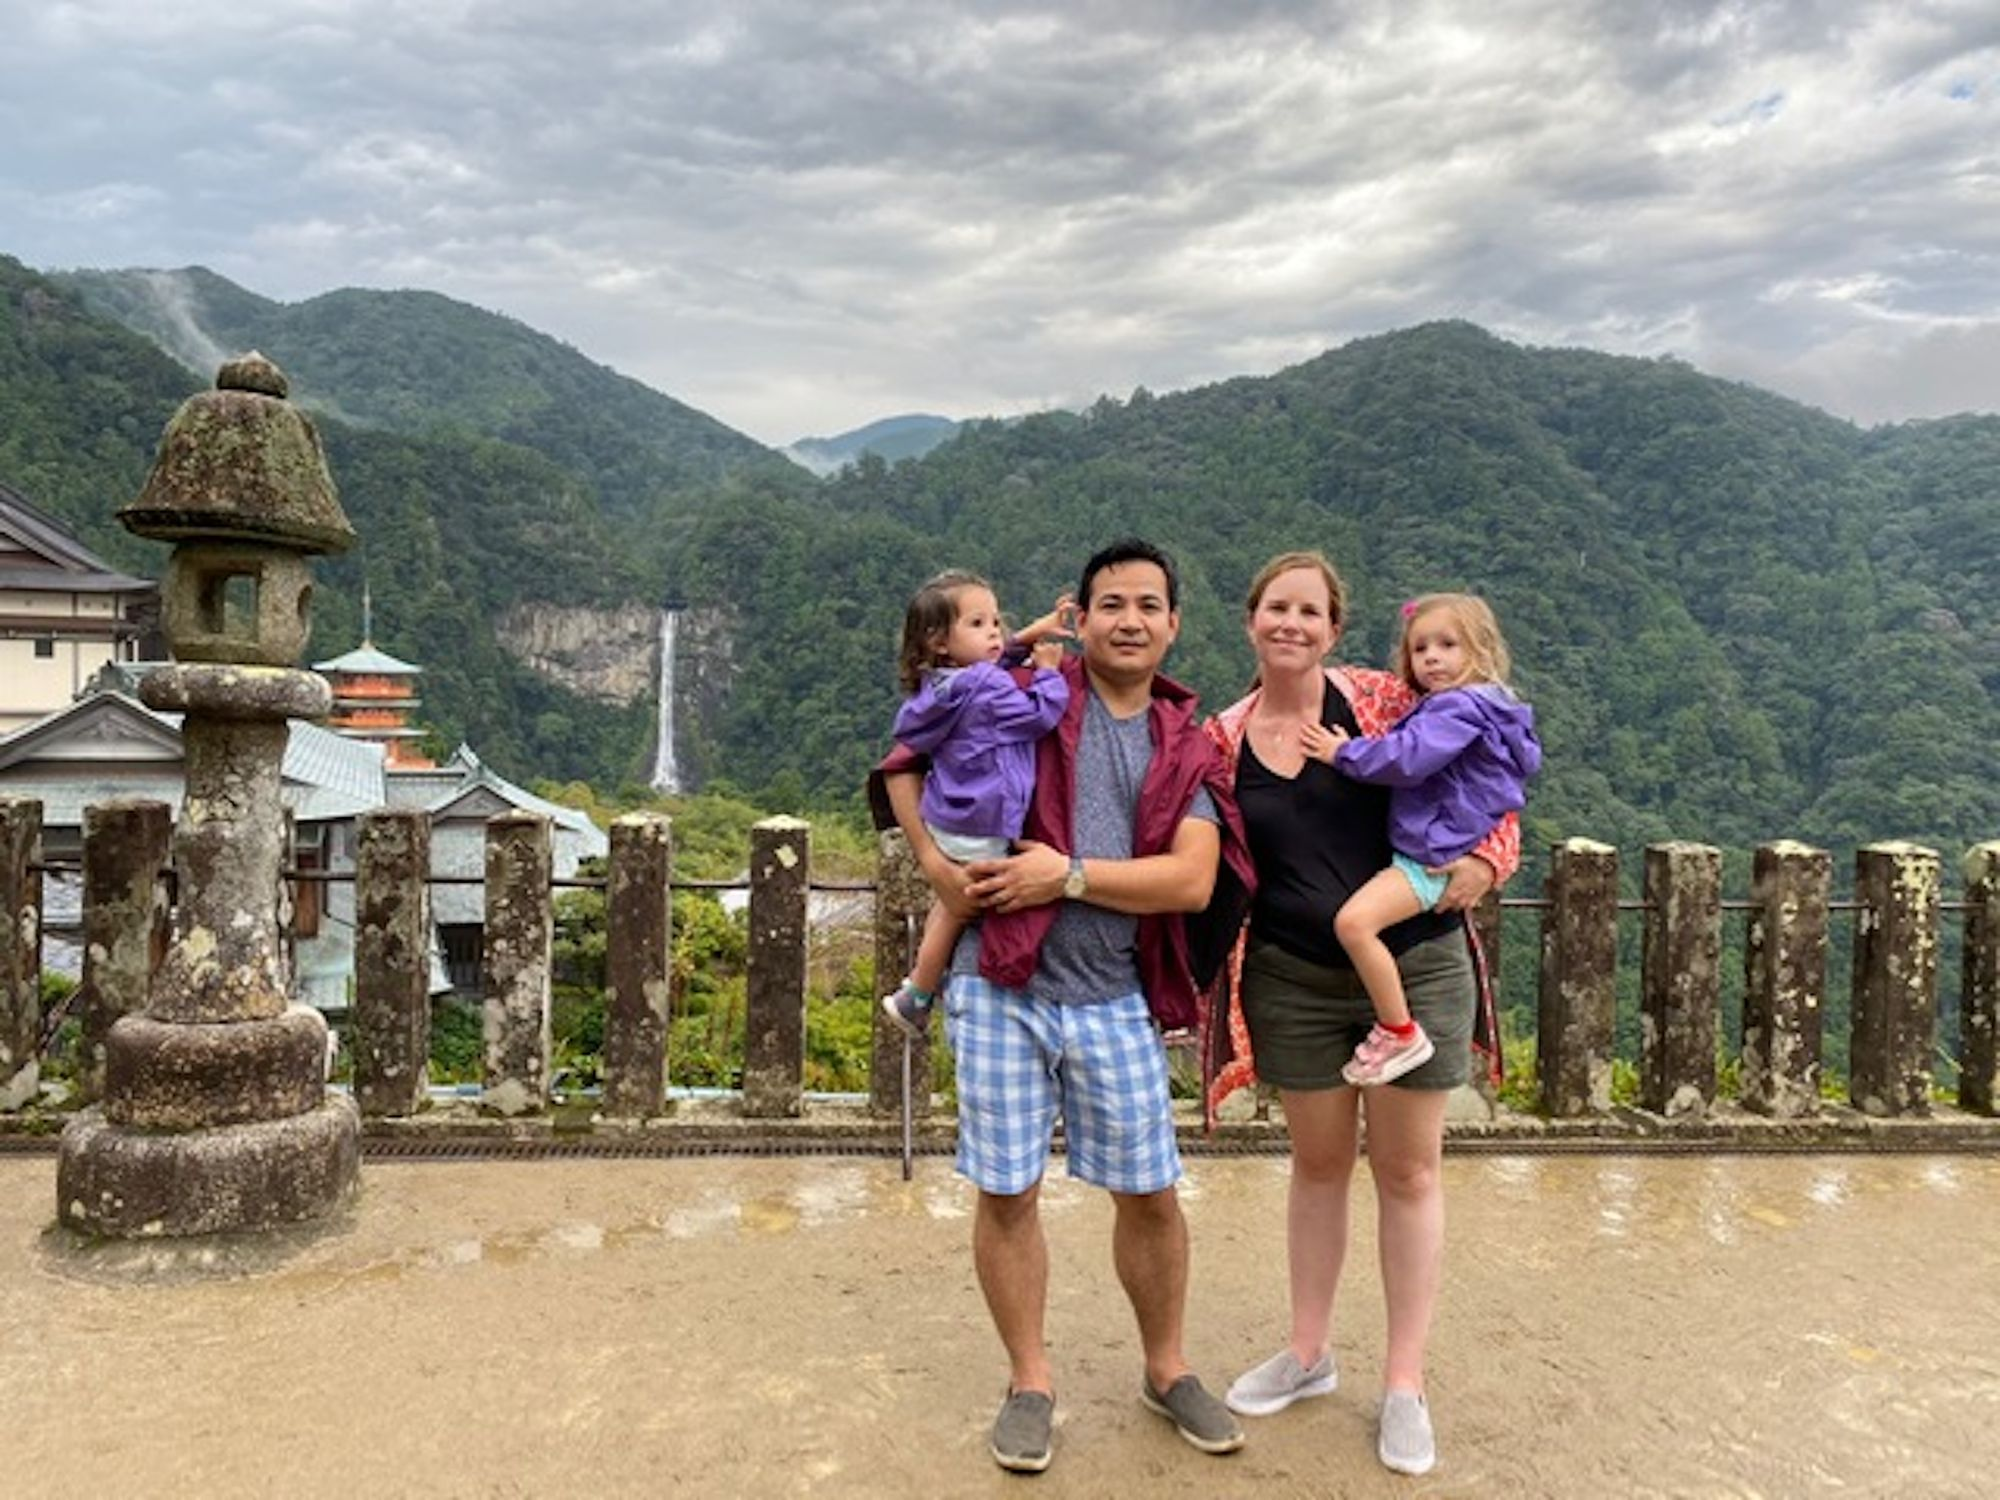 Journy Traveler Sarah Pace On Her Family Reunion (With Toddlers!) In Japan